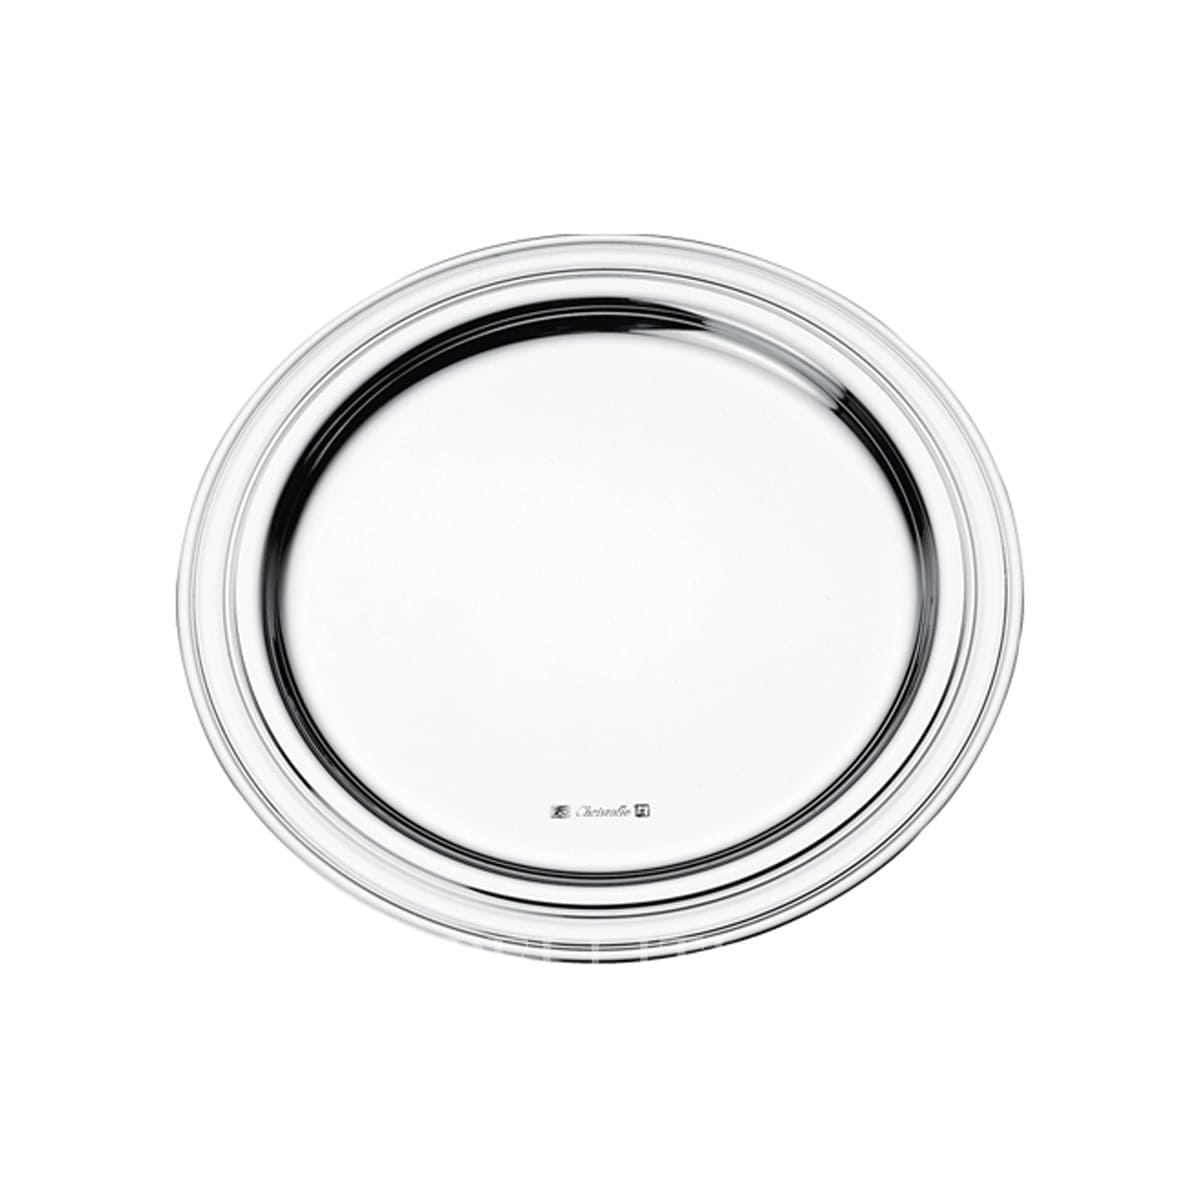 Christofle Albi Silver Plated Individual Bread Plate